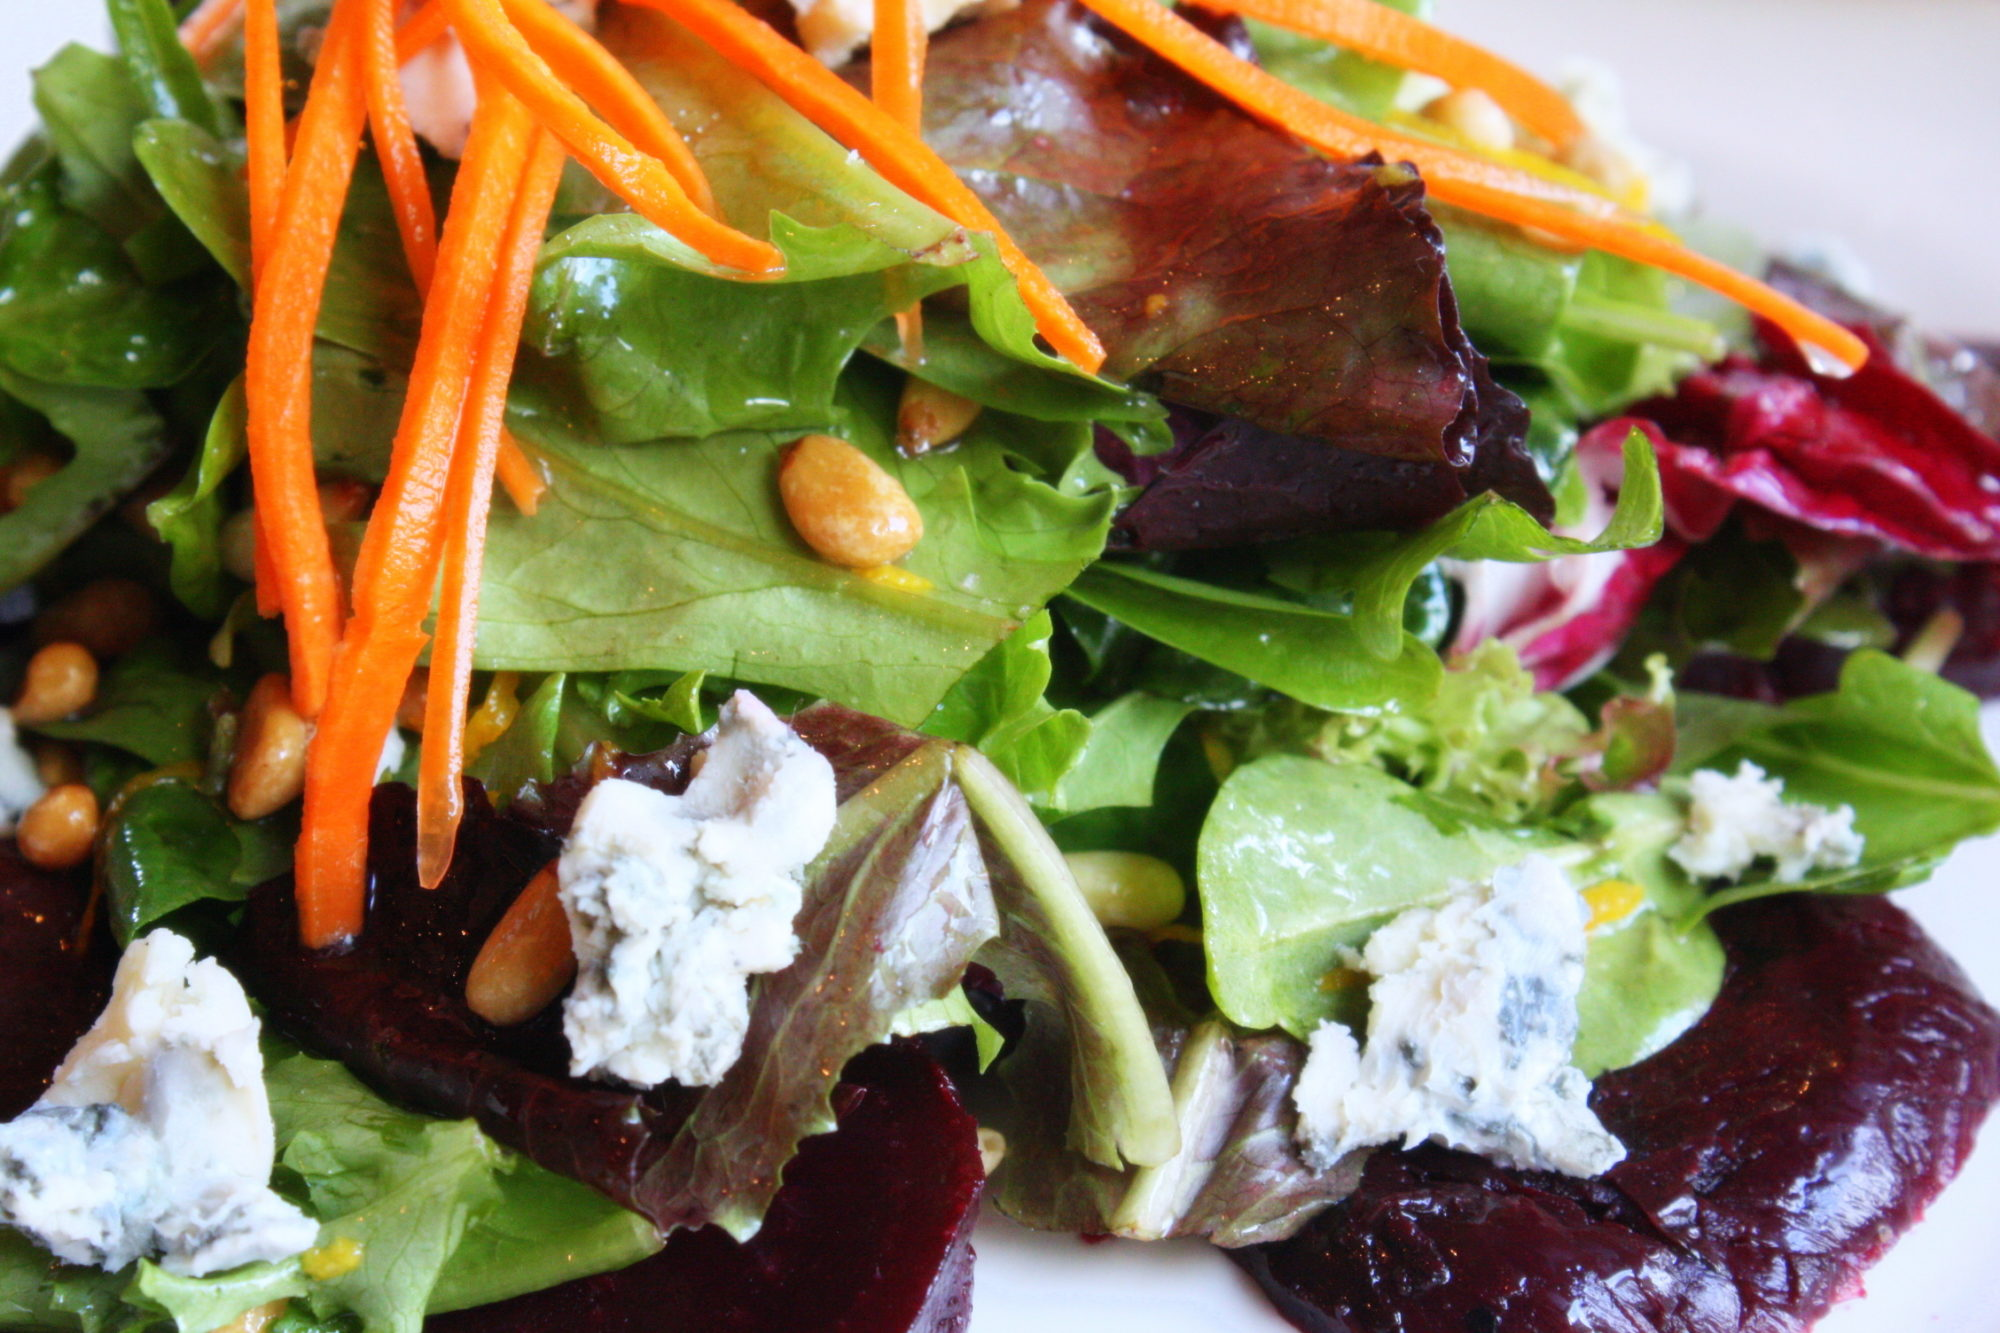 Beets and Greens 'libido boosting' Salad